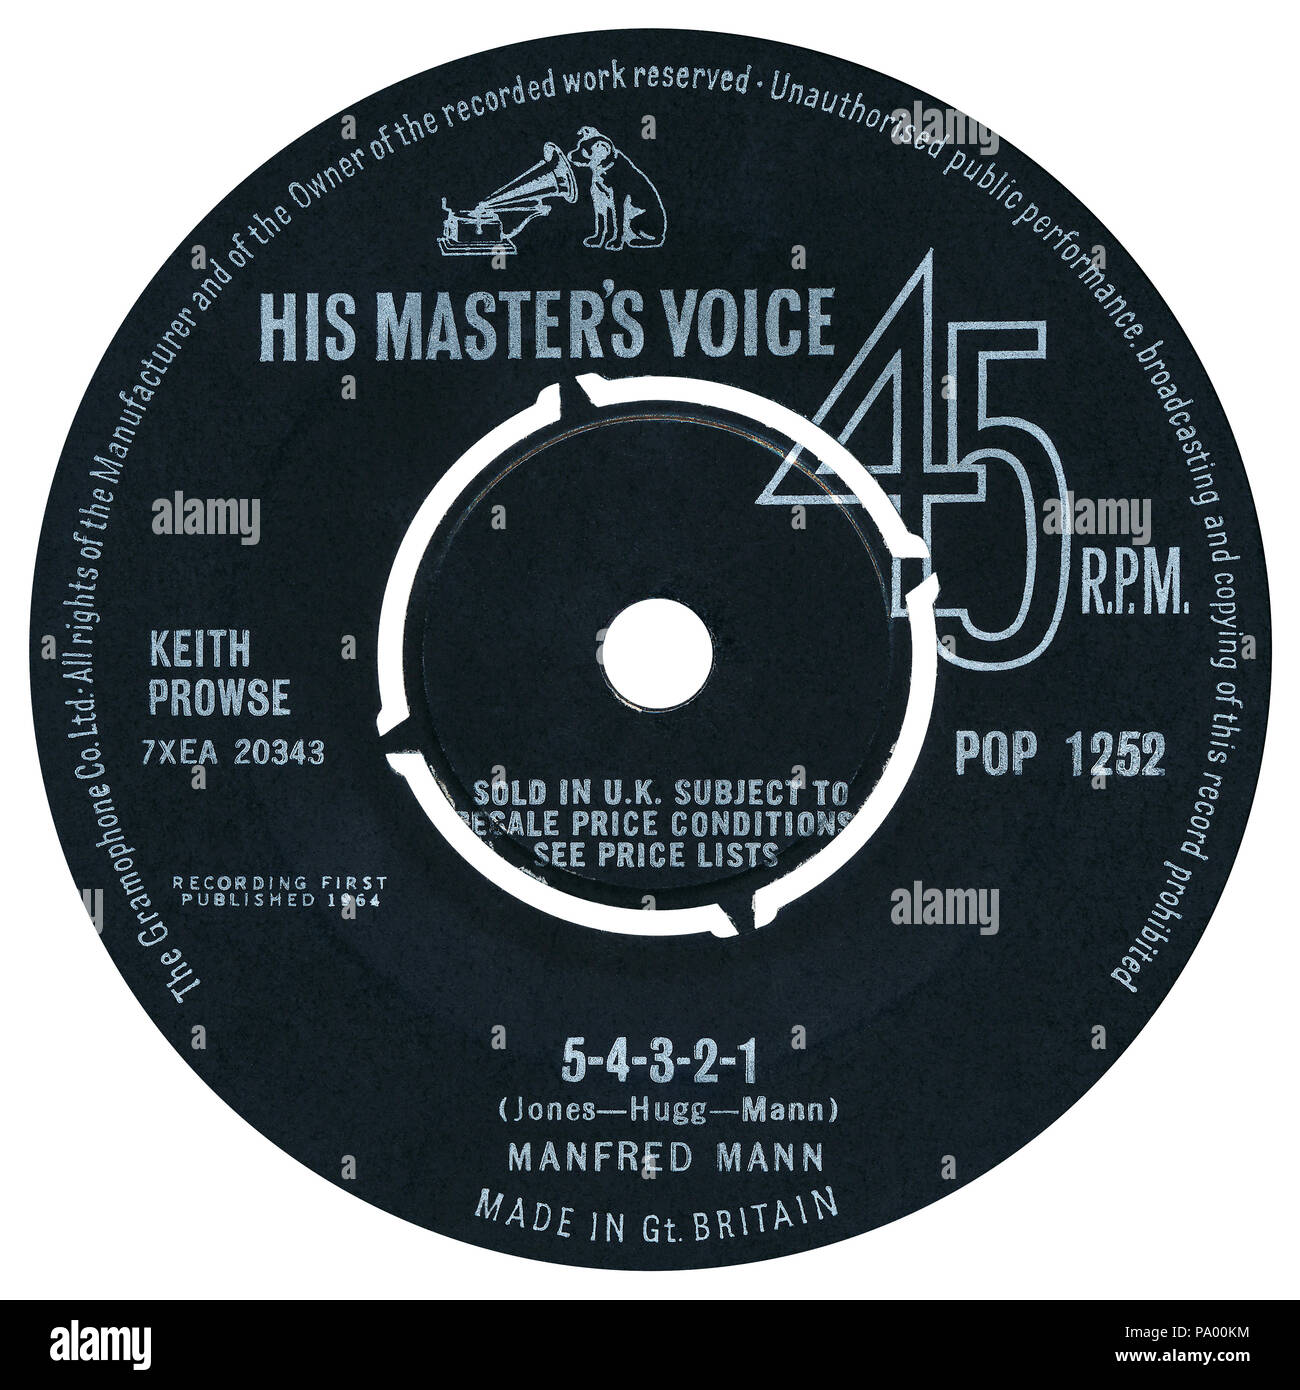 UK 45 rpm 7' single of 5-4-3-2-1 by Manfred Mann on the His Master's Voice label from 1964. Written by Paul Jones, Mike Hugg and Manfred Mann and produced by John Burgess. - Stock Image